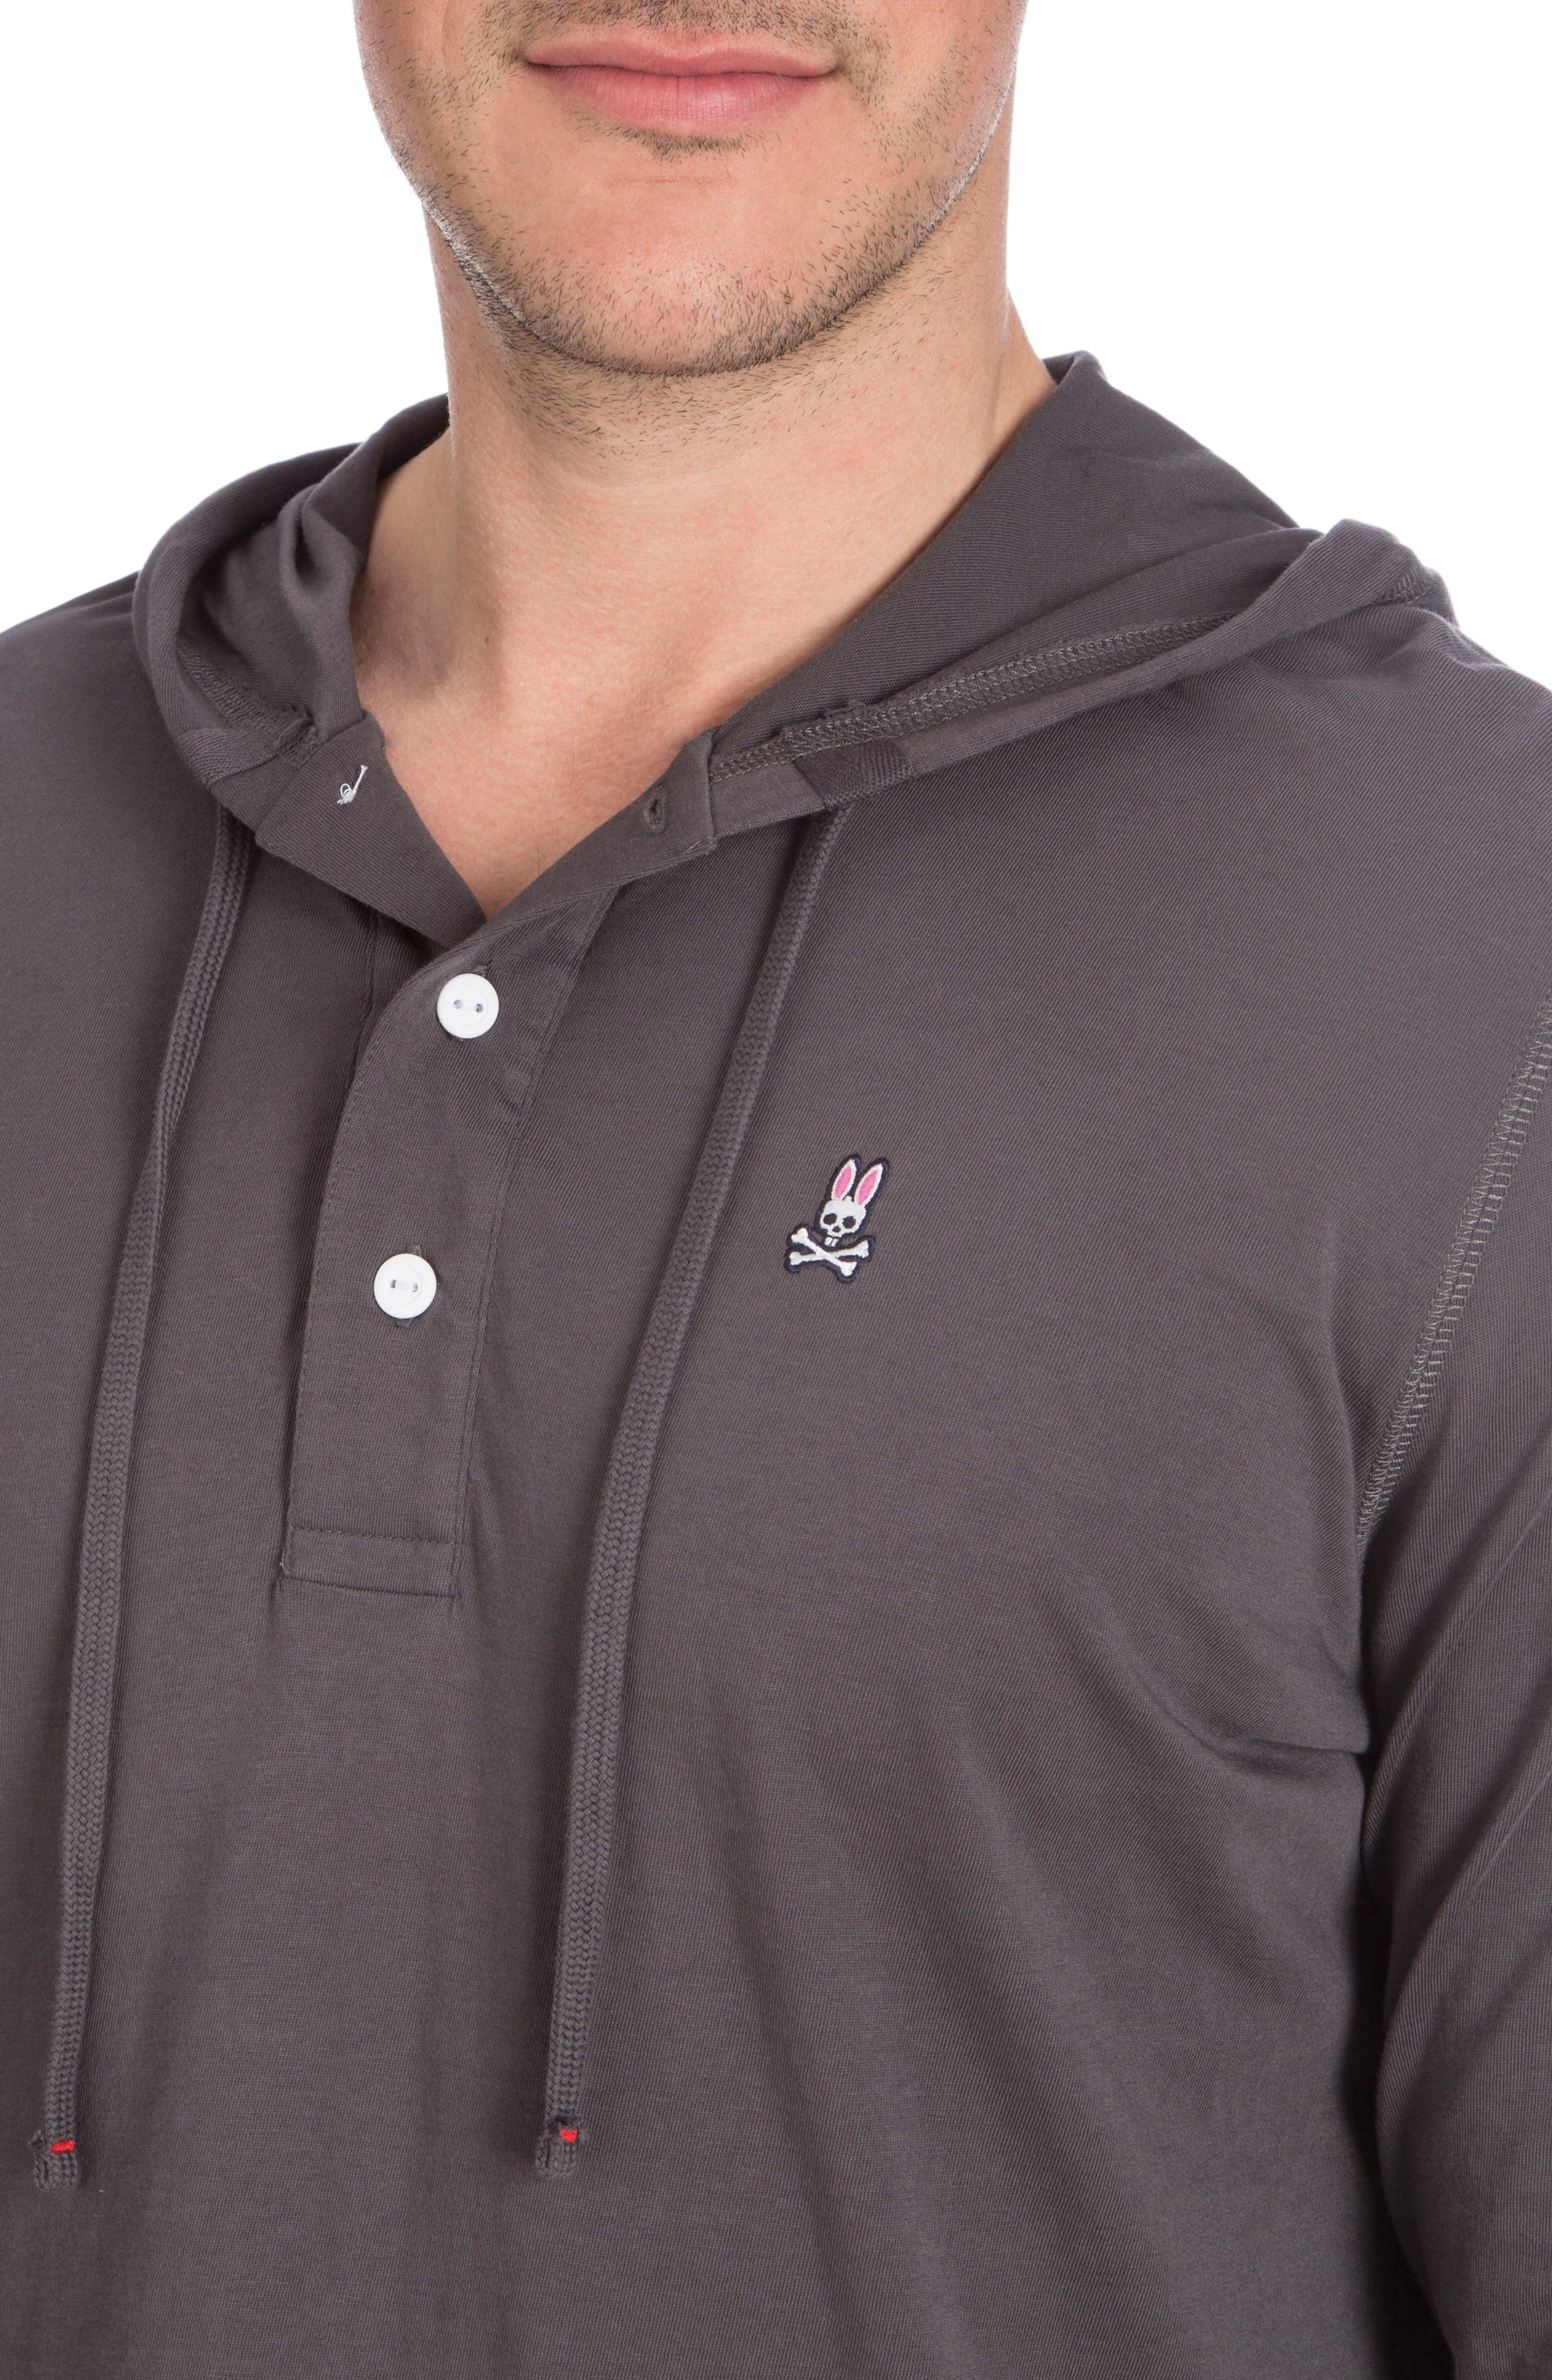 Delano Henley Hoodie,                             Alternate thumbnail 3, color,                             003